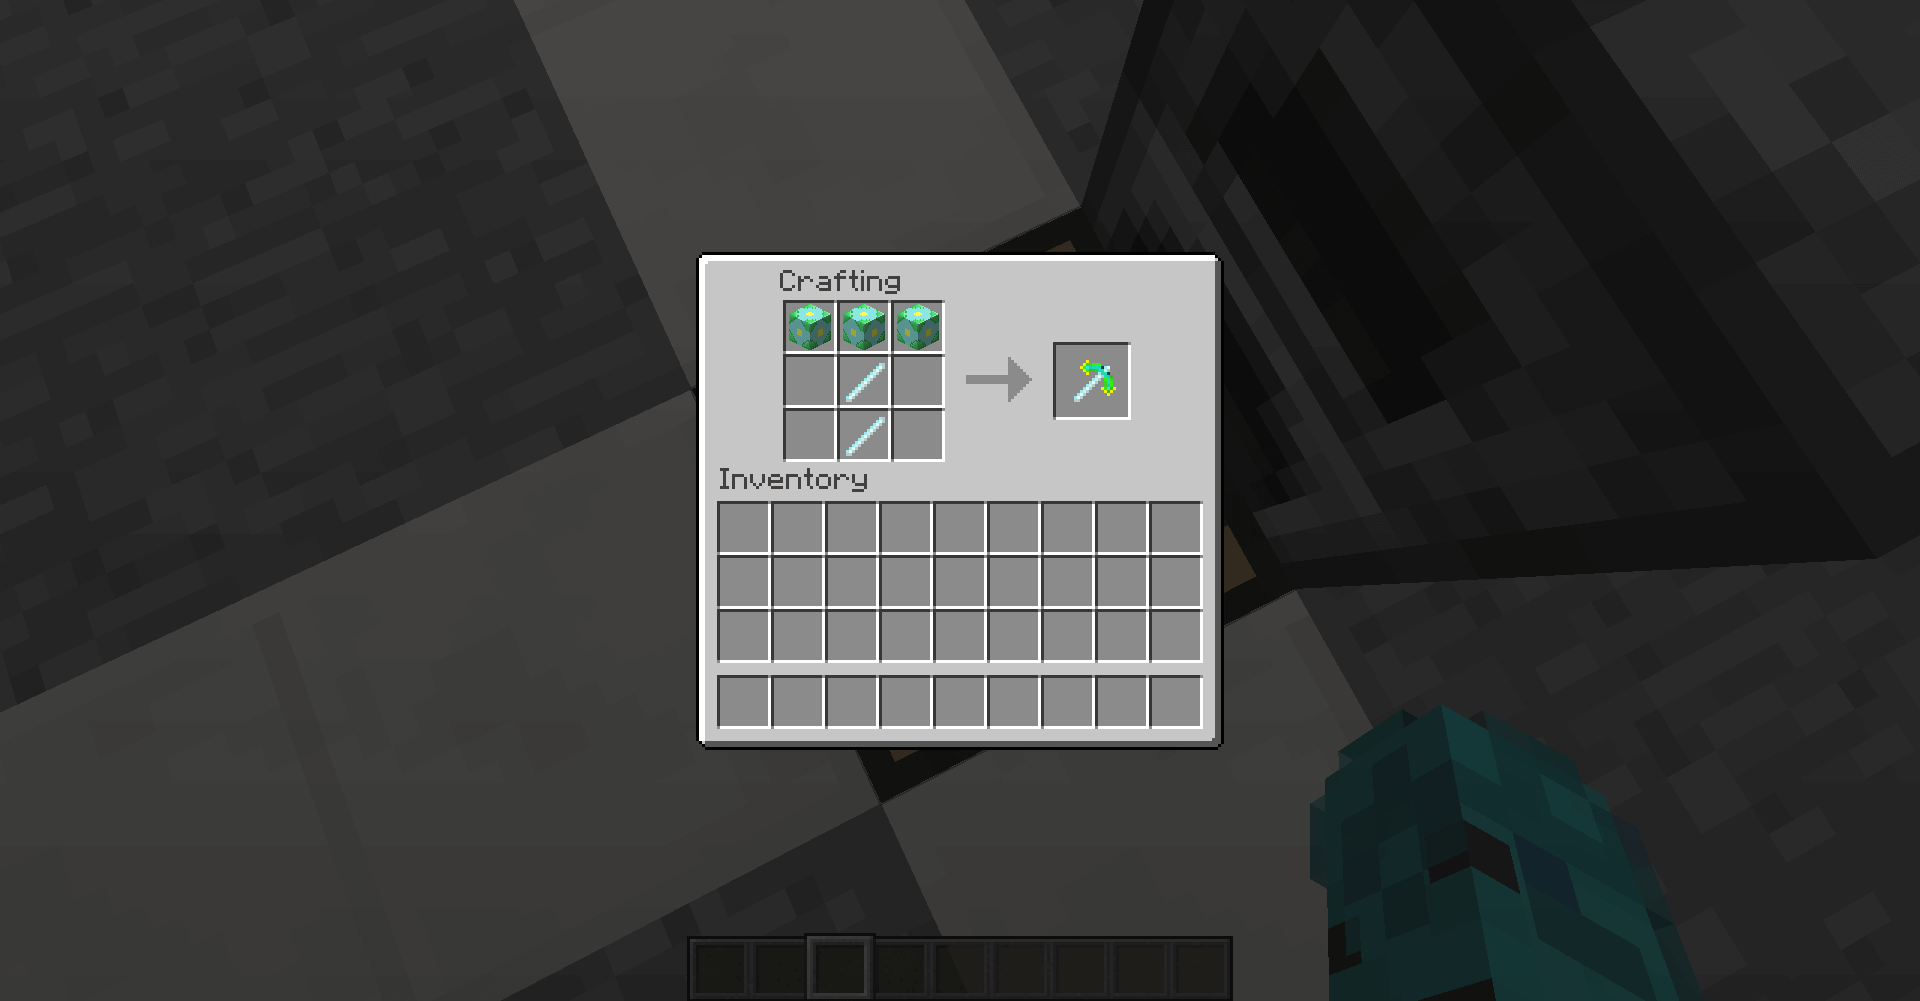 heaven-and-hell-mod-crafting-recipes-8.png